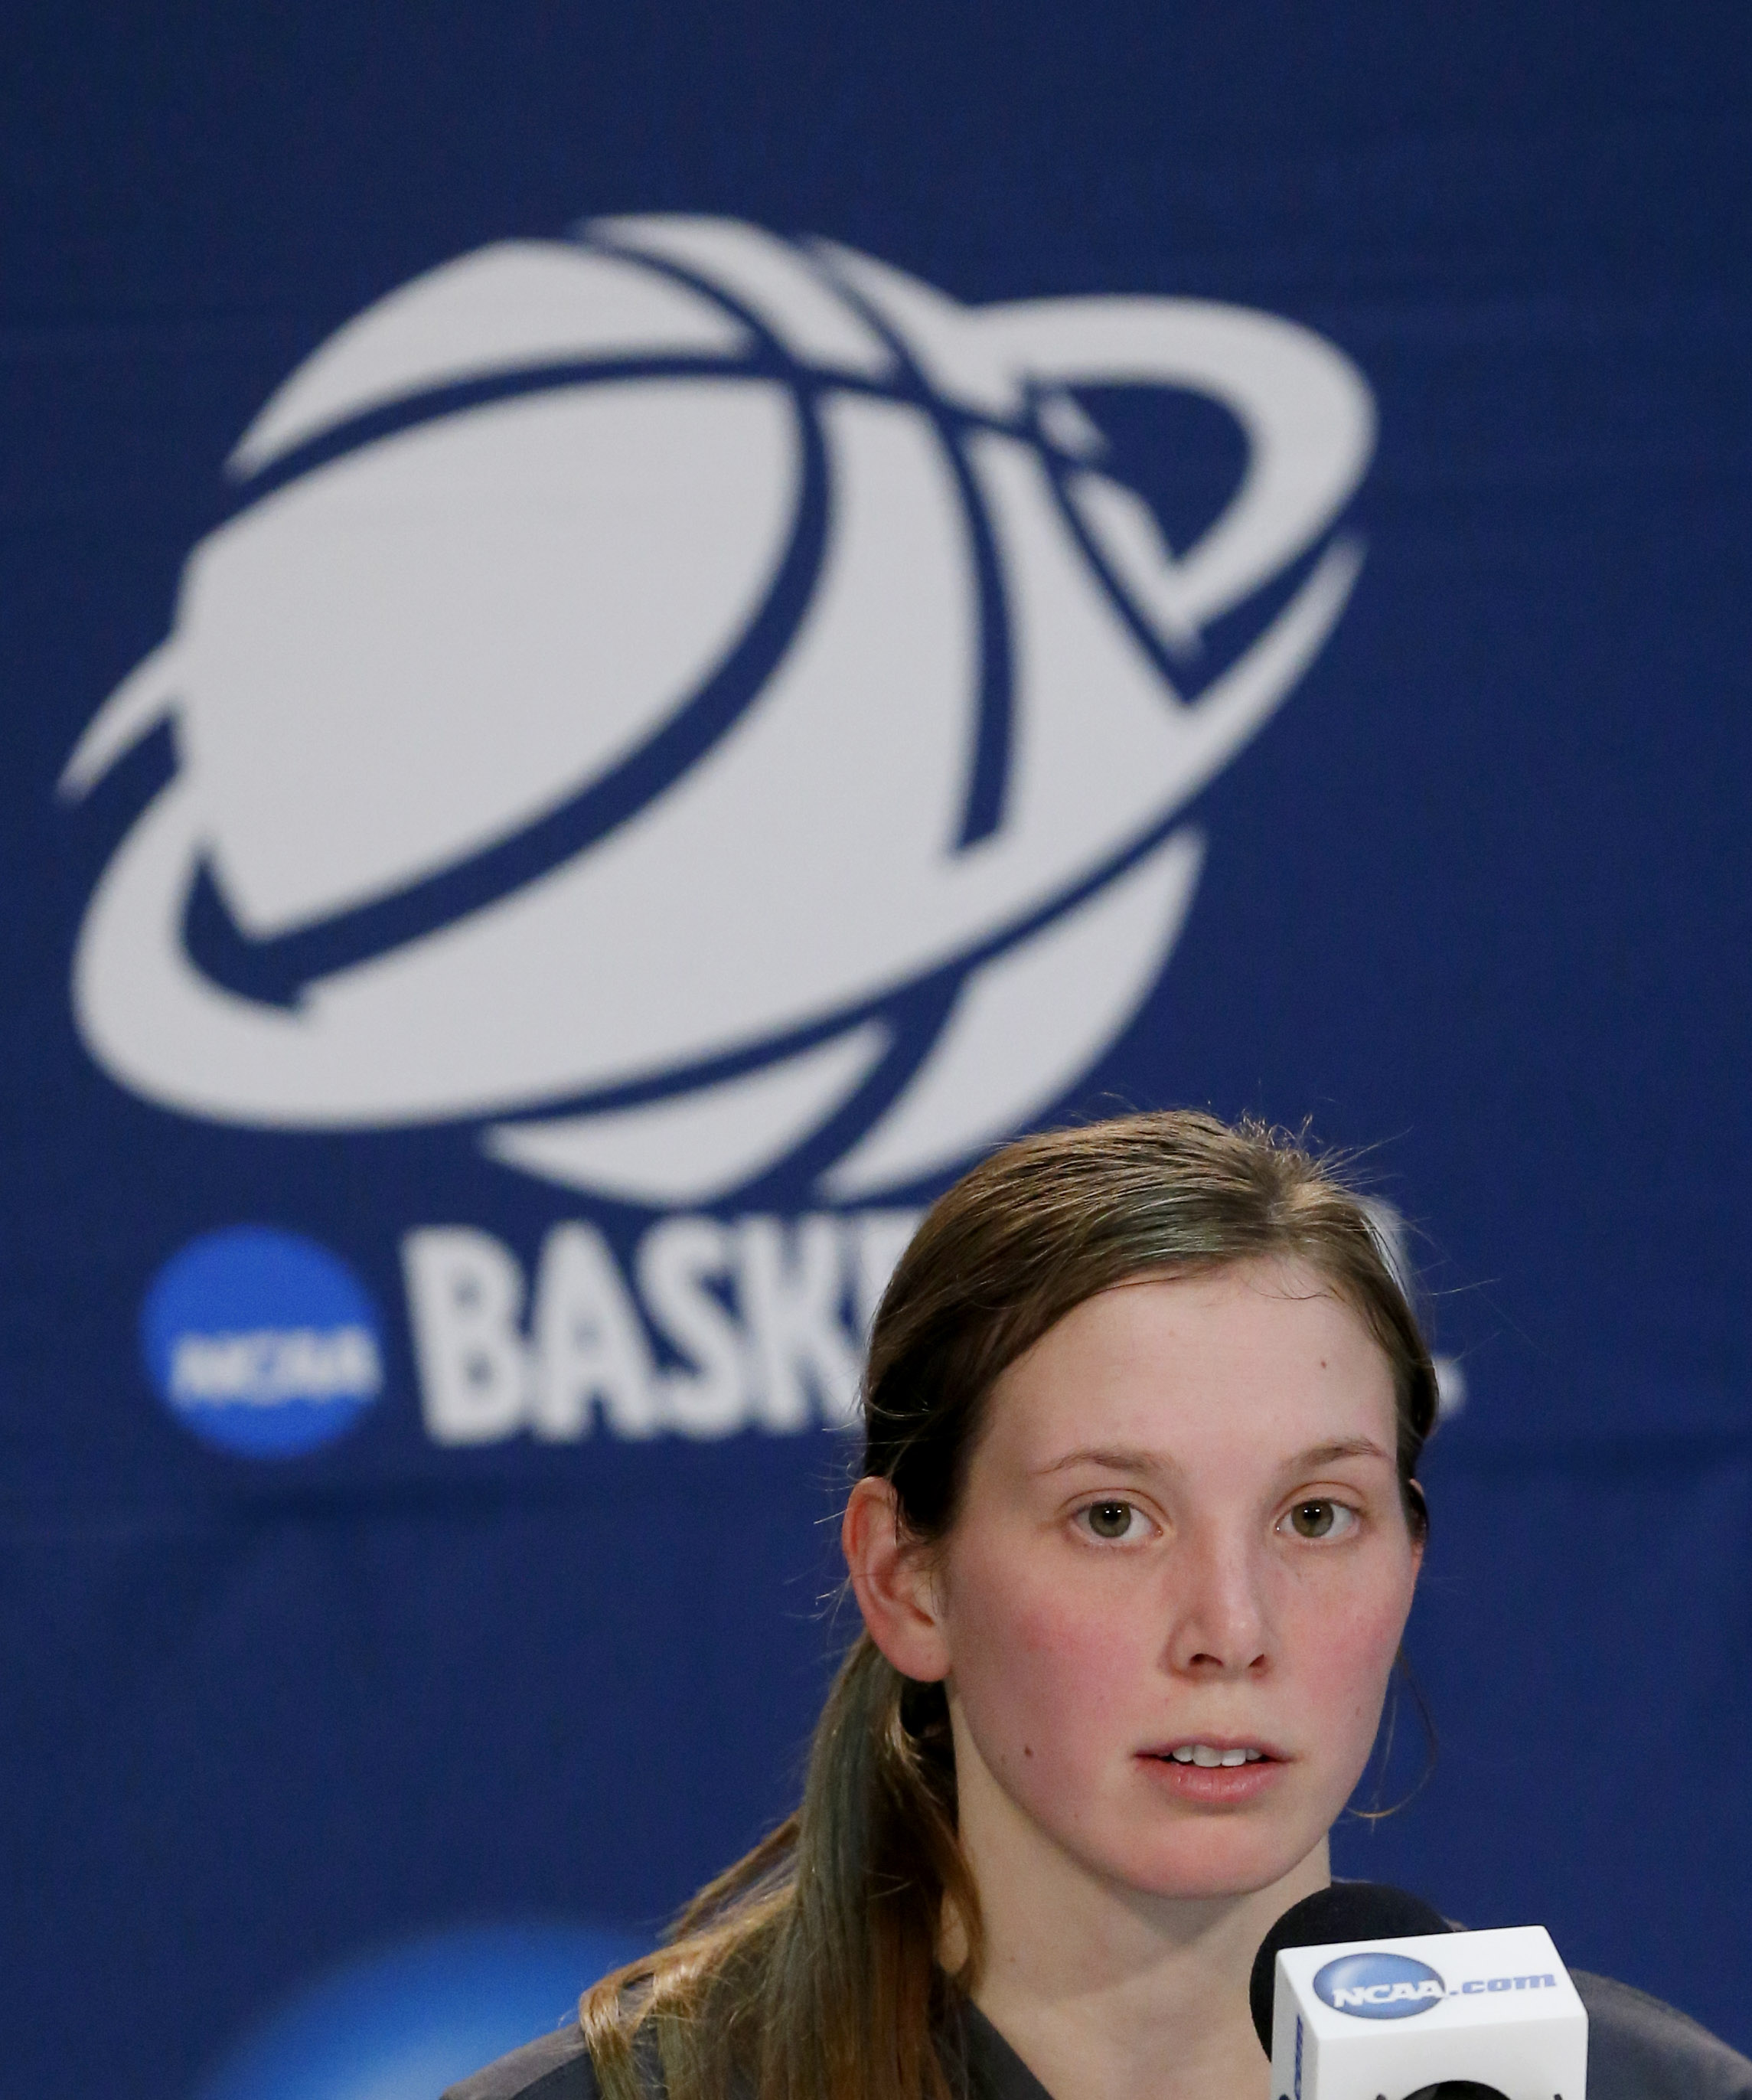 Notre Dame reserve guard Cable will return next season